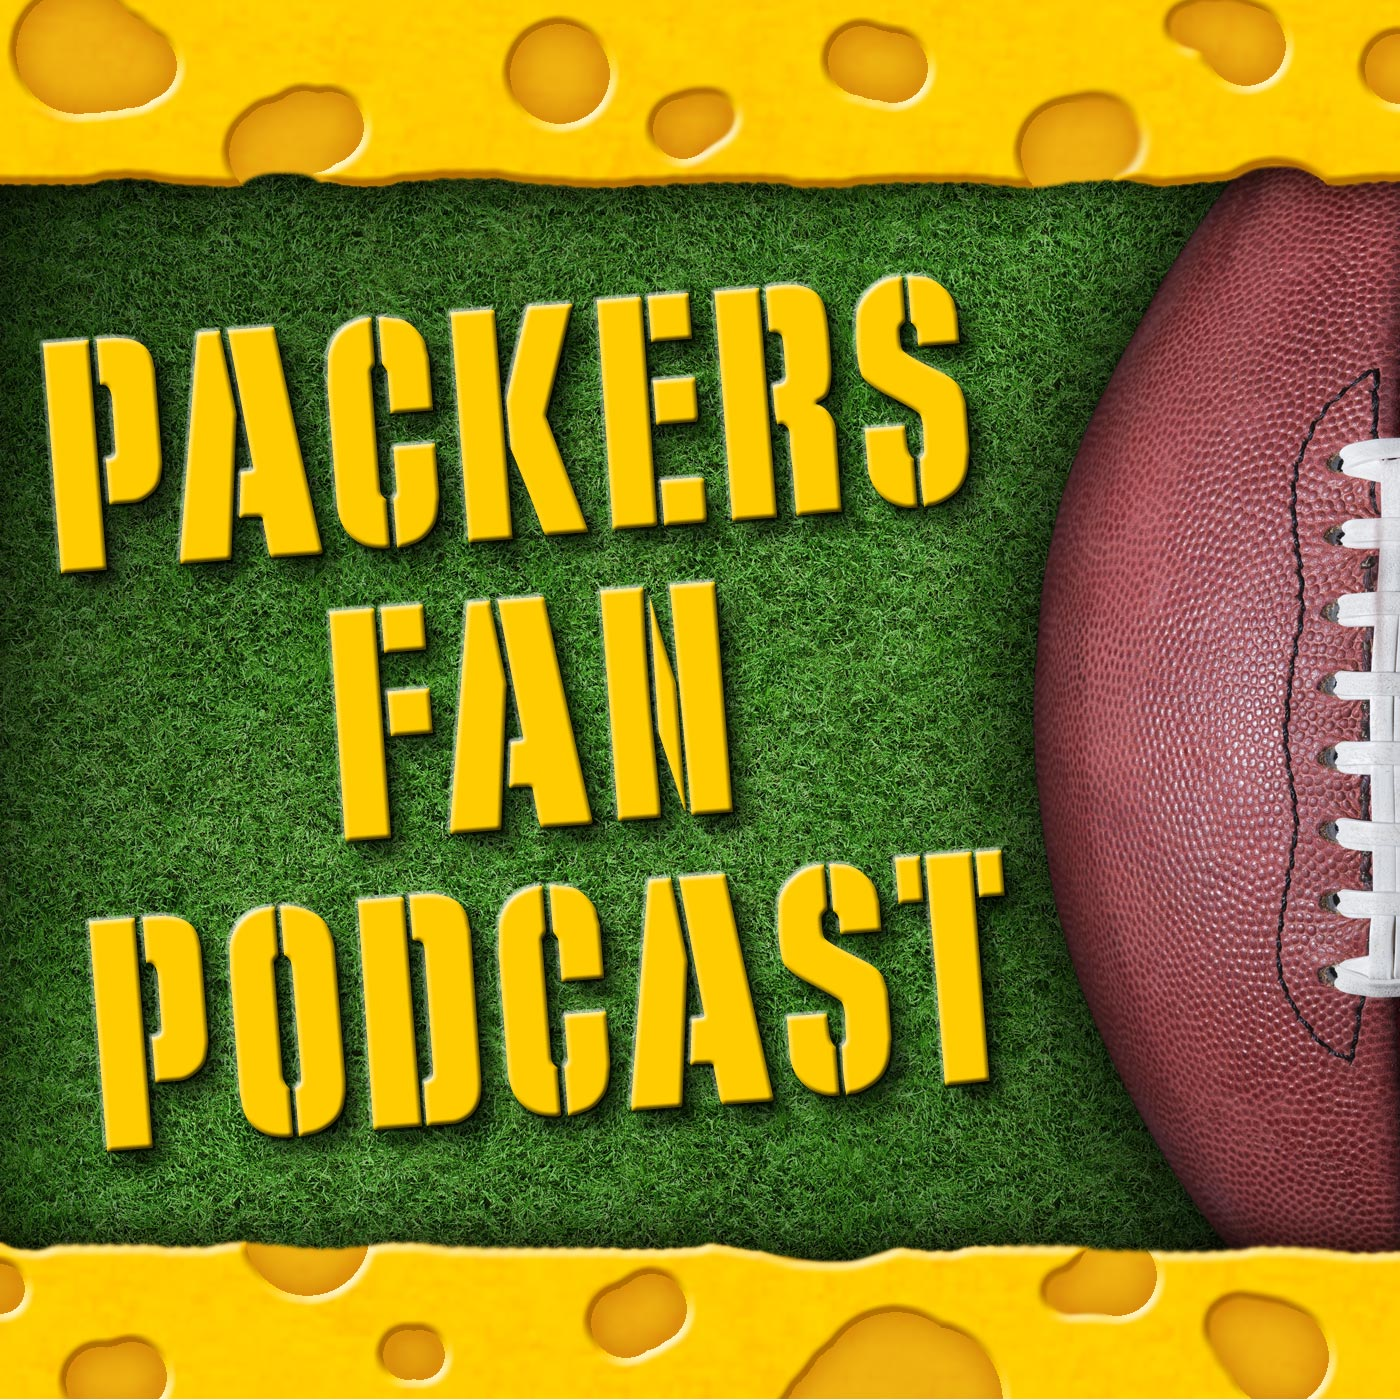 Packers Fan Podcast | Unofficial Green Bay Packers Talk